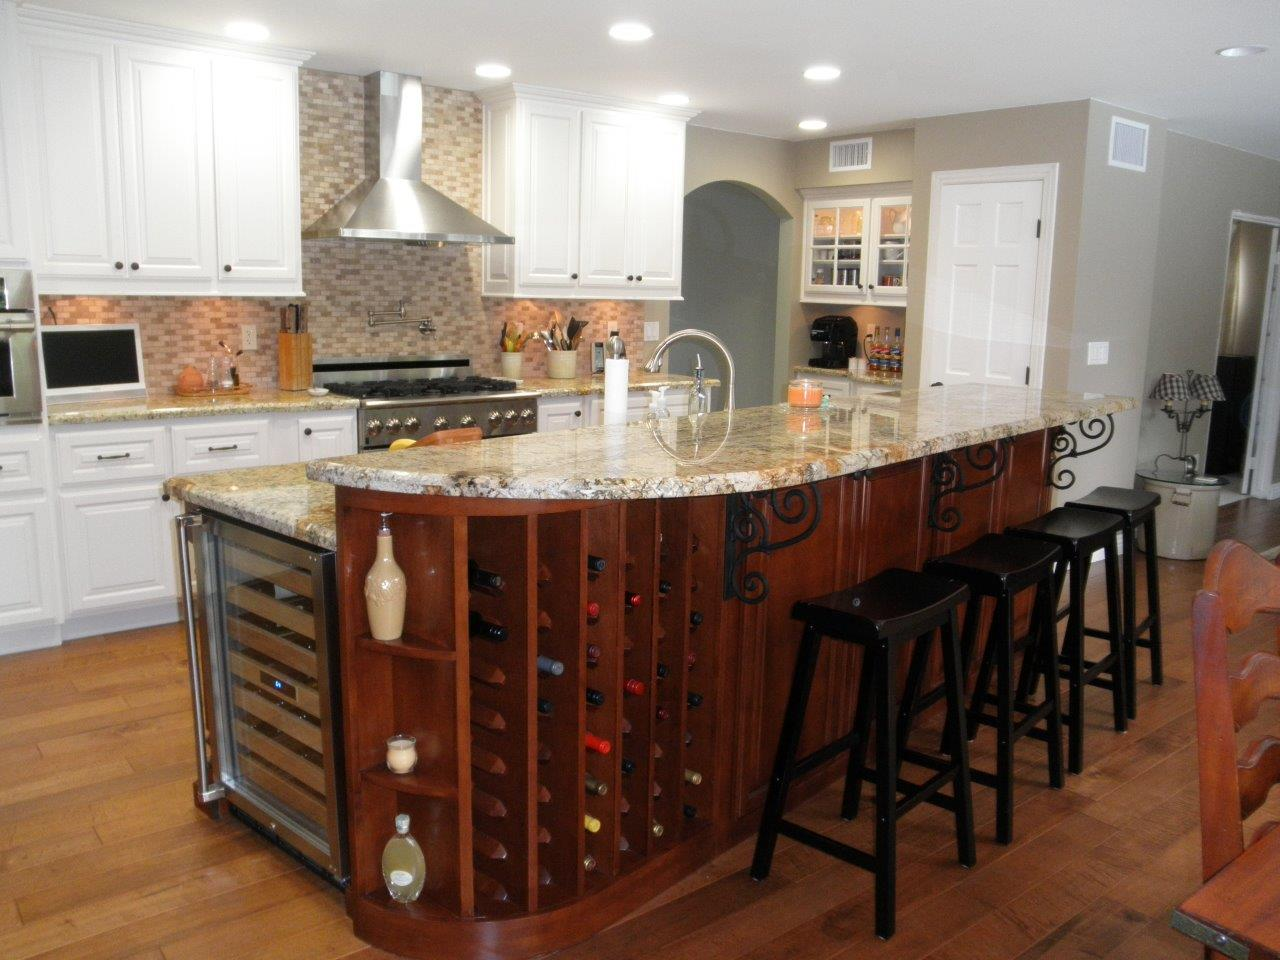 get a price on custom kitchen cabinets